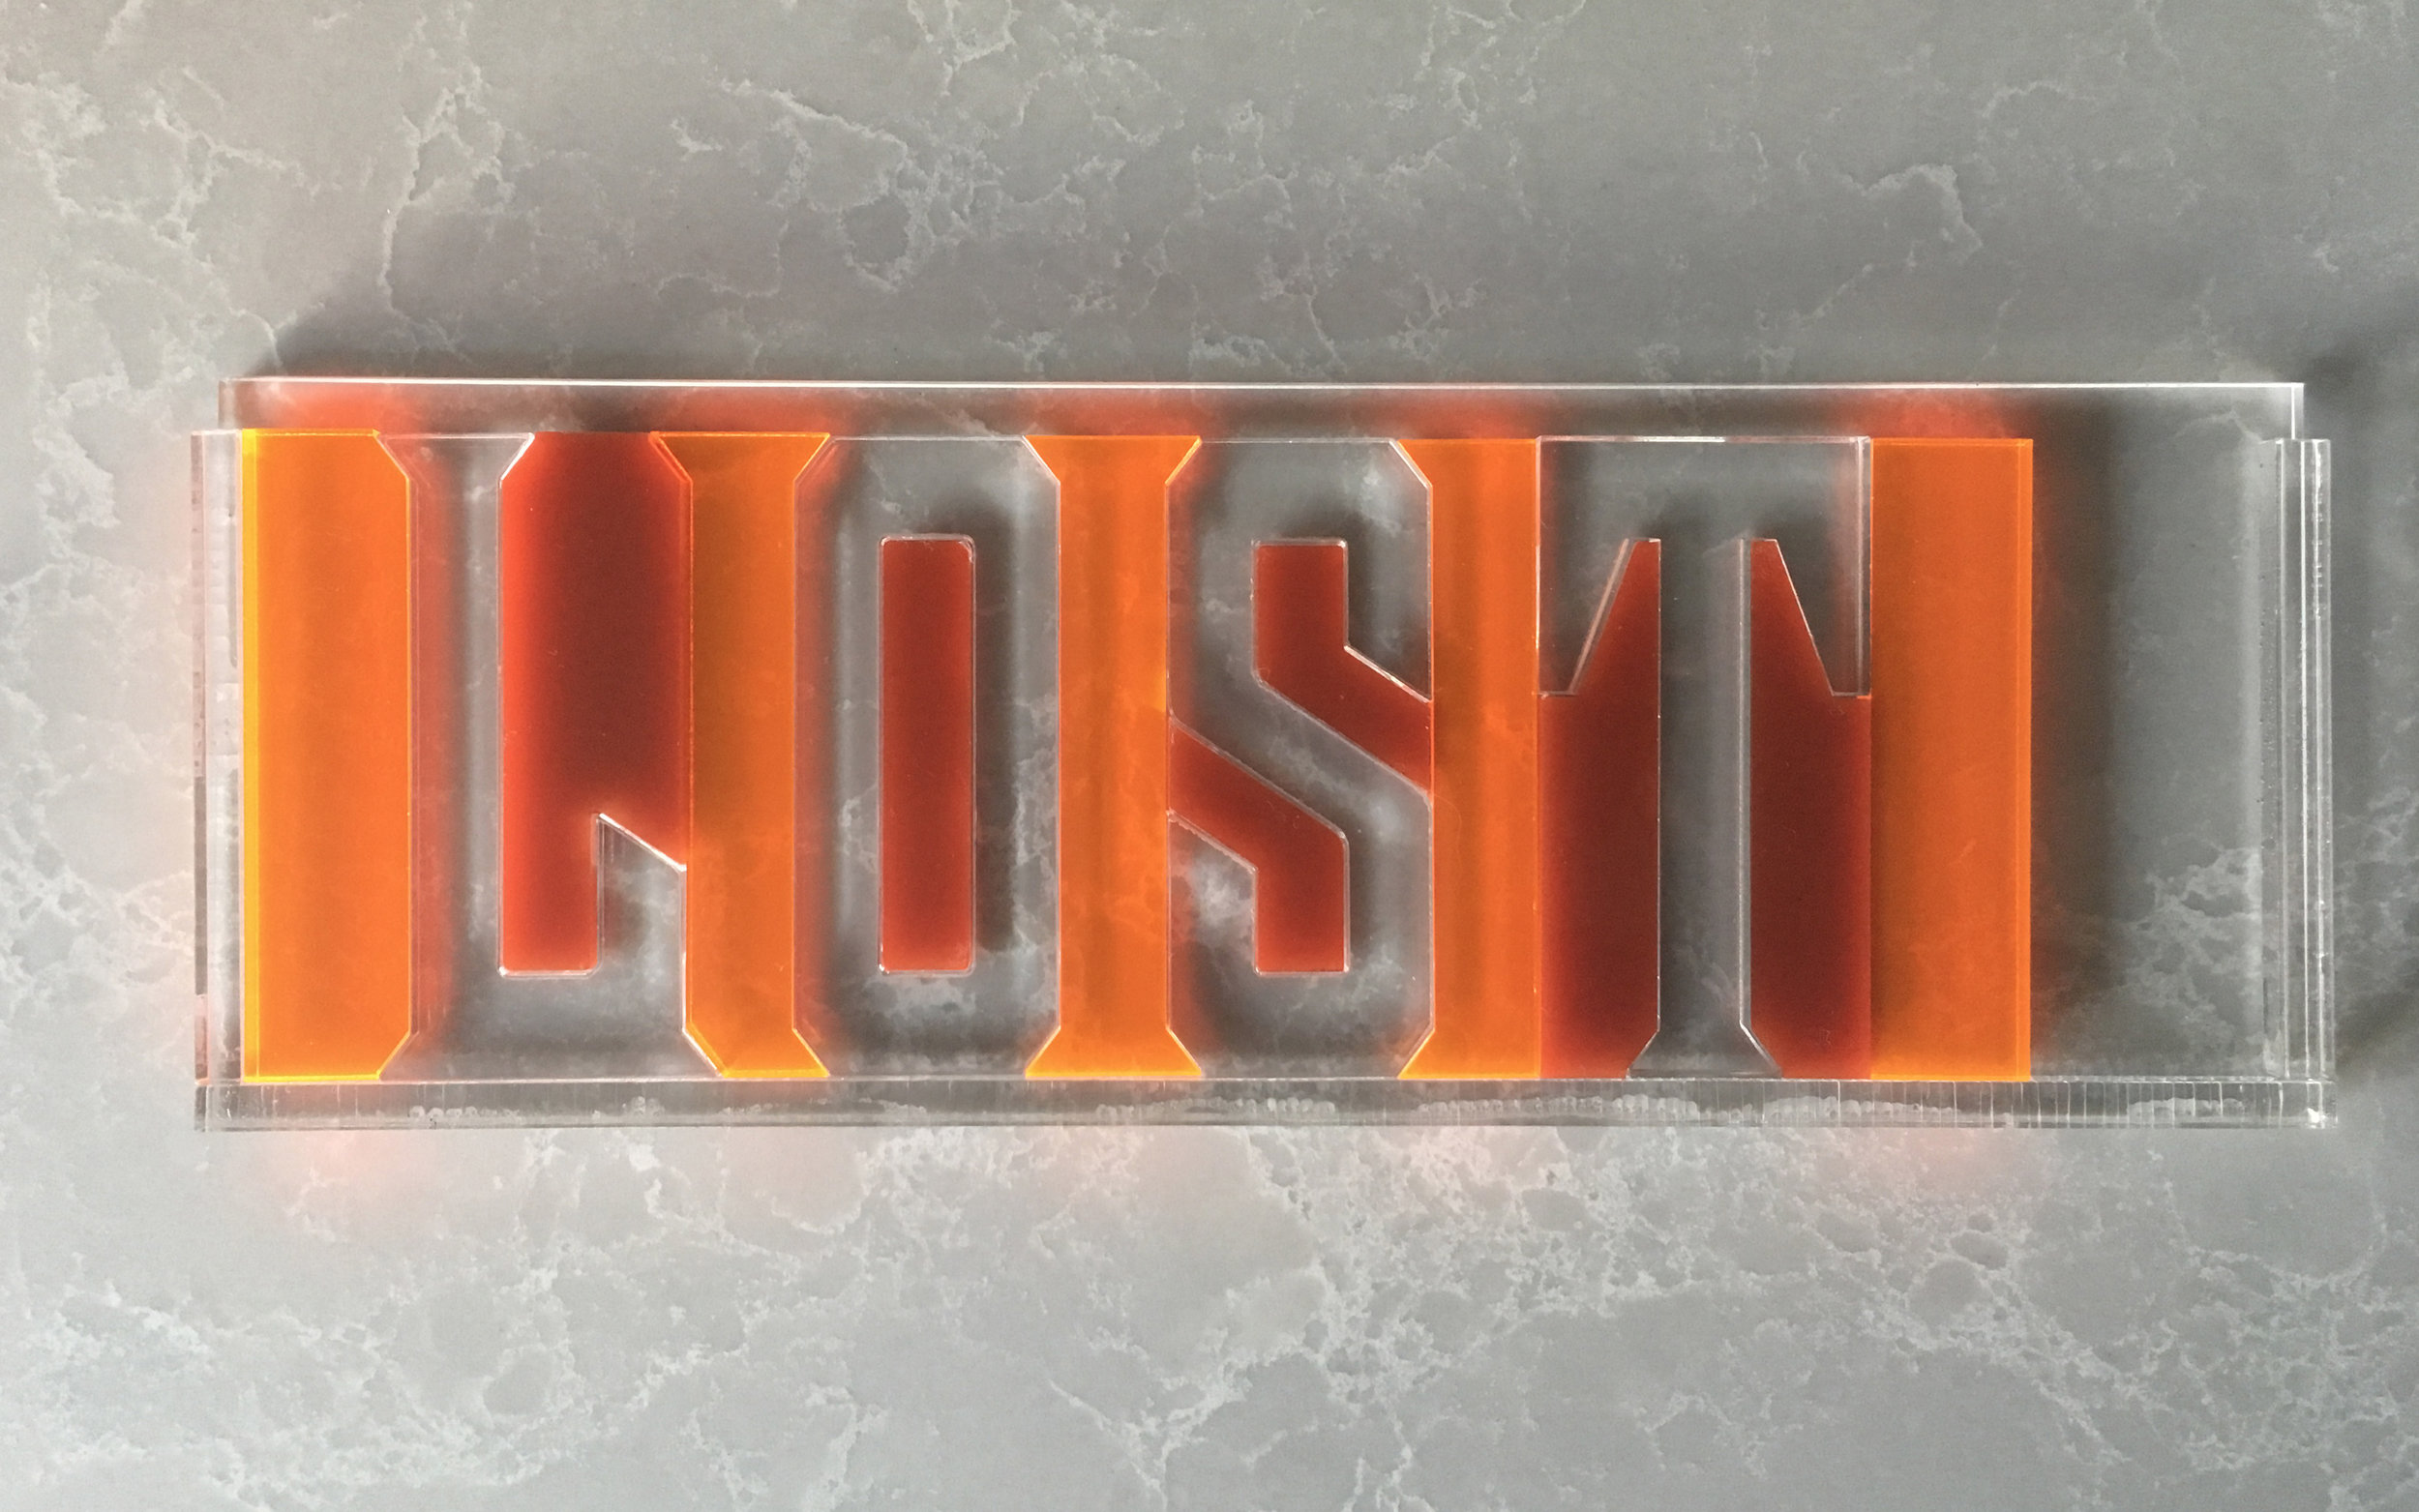 Neon-orange spacers in a variety of widths allow students to experiment with letter spacing. Proportions are based on letterpress standards. Shown here are 6/em spacers.